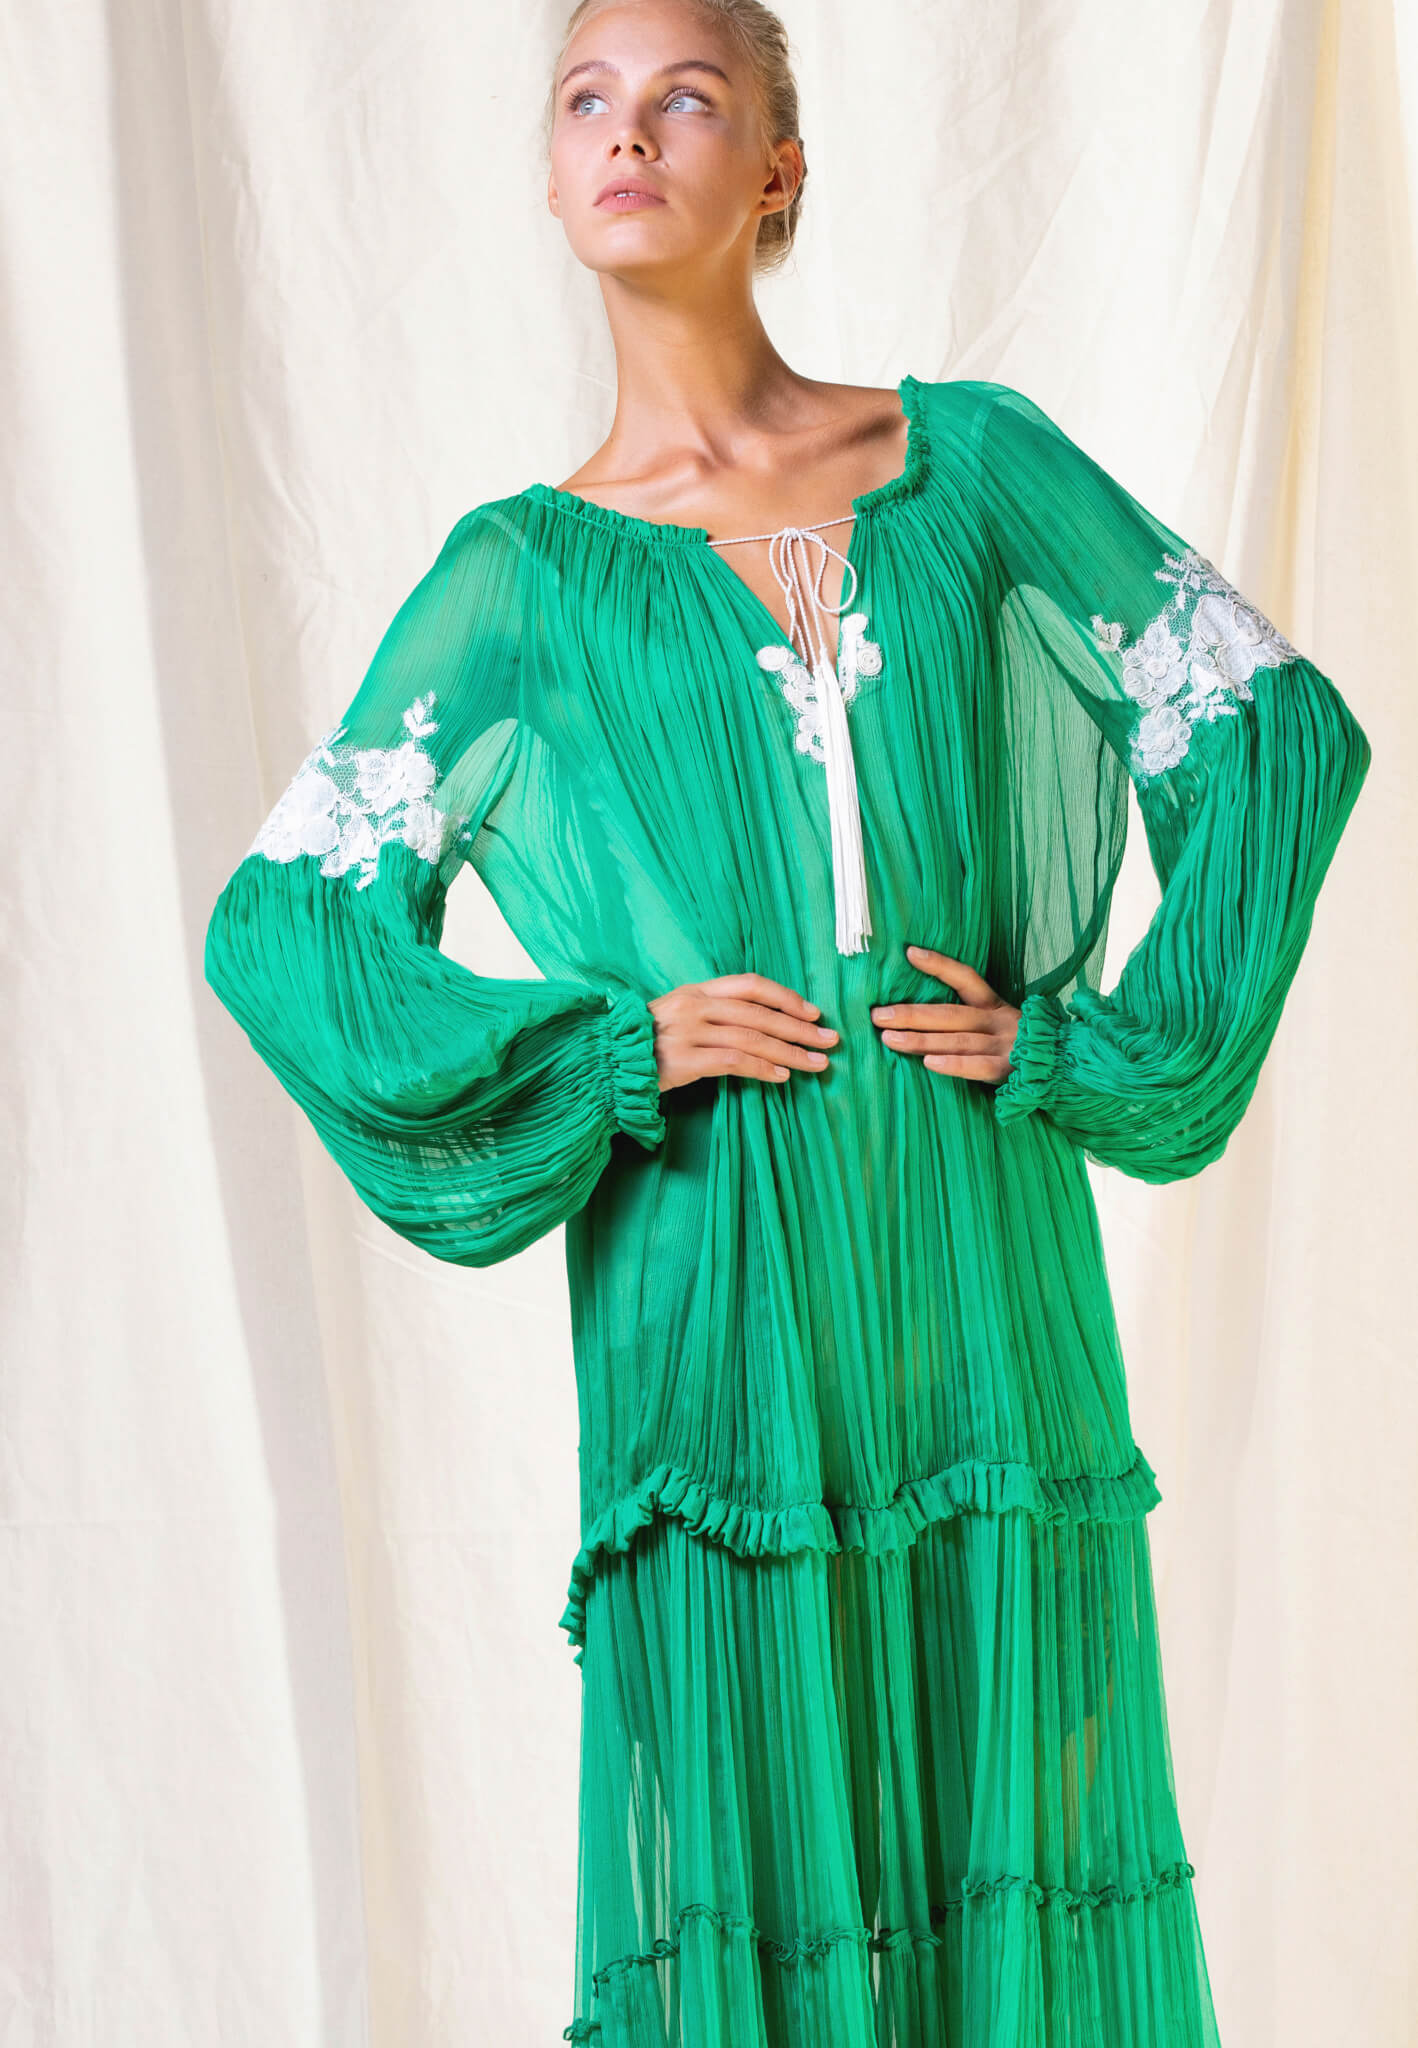 Green Silk dress with embroidery